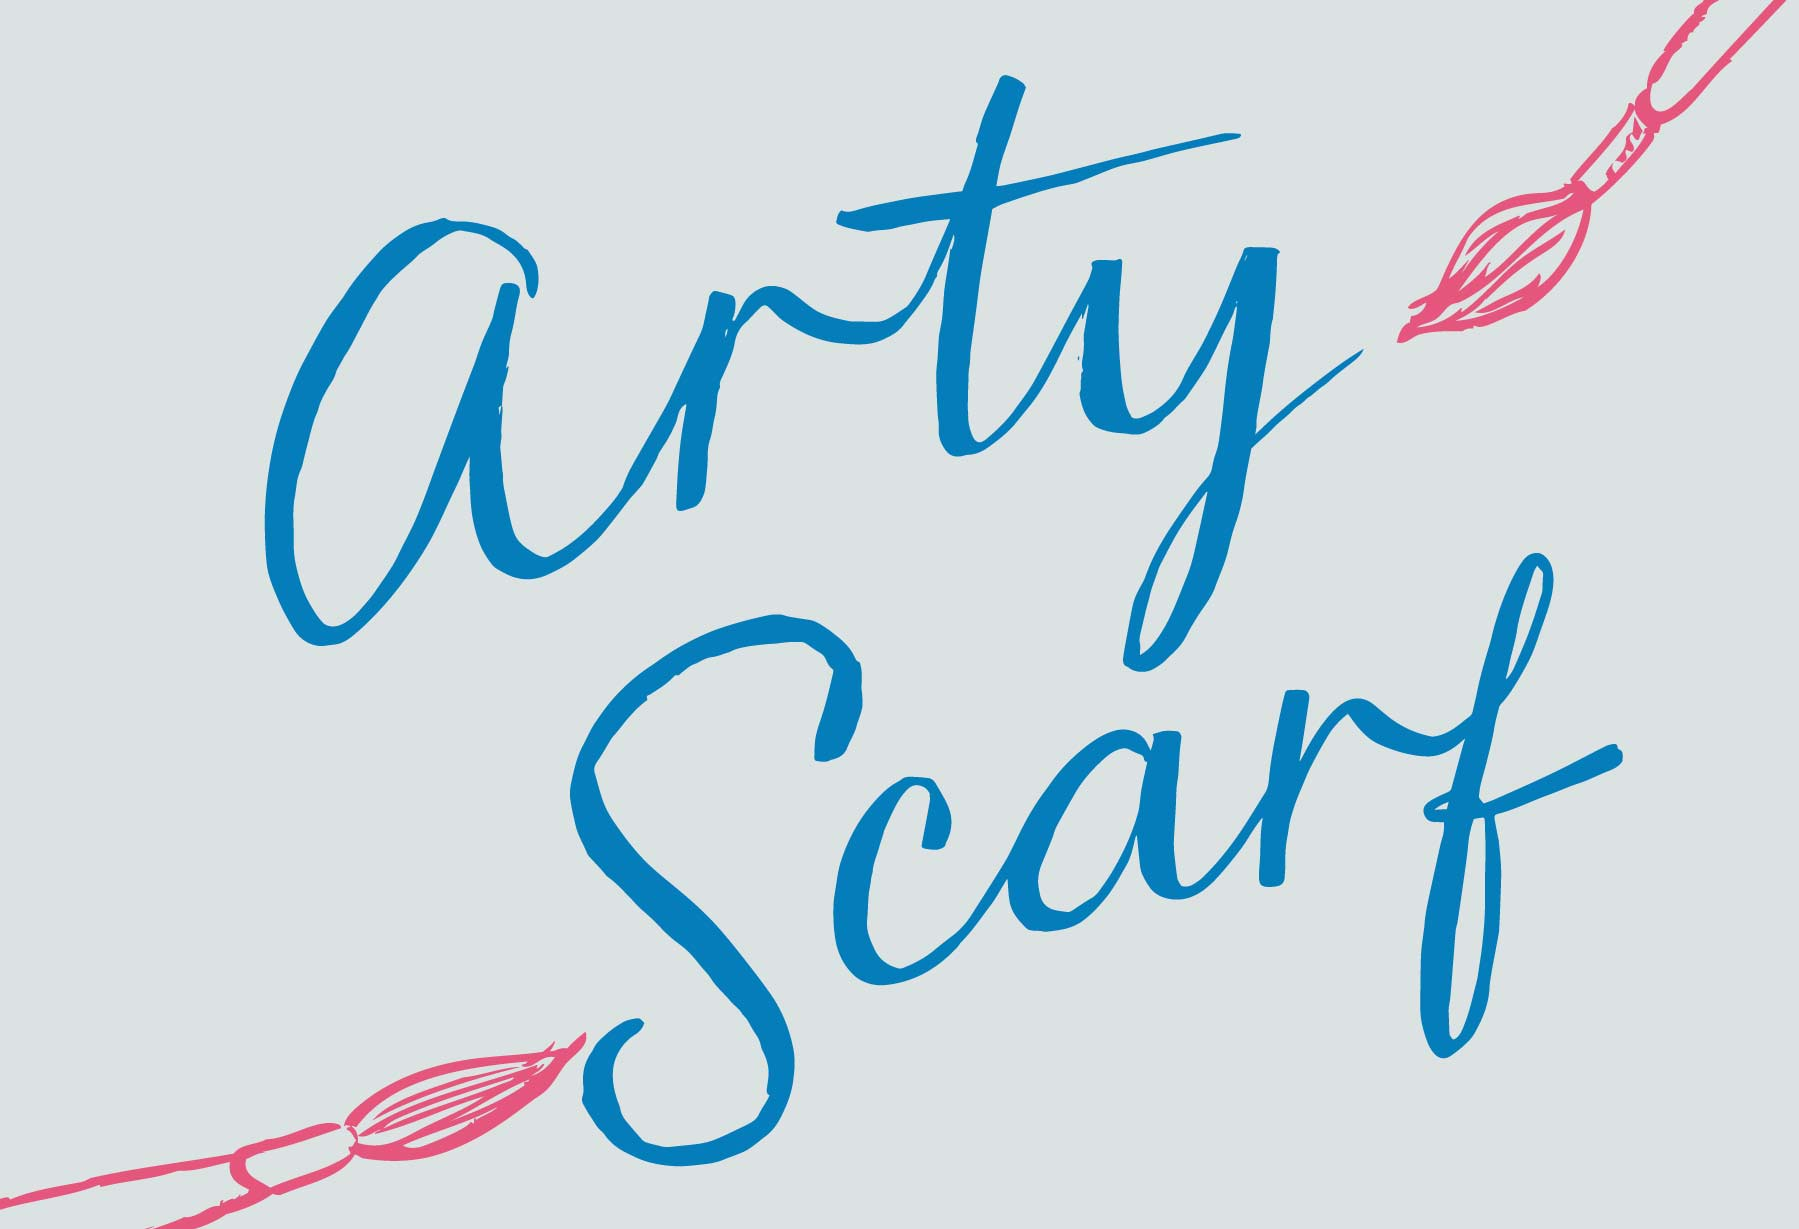 Custom vintage style script lettering for Seasalt's range of fabulous Arty Scarves. By Elly Jahnz